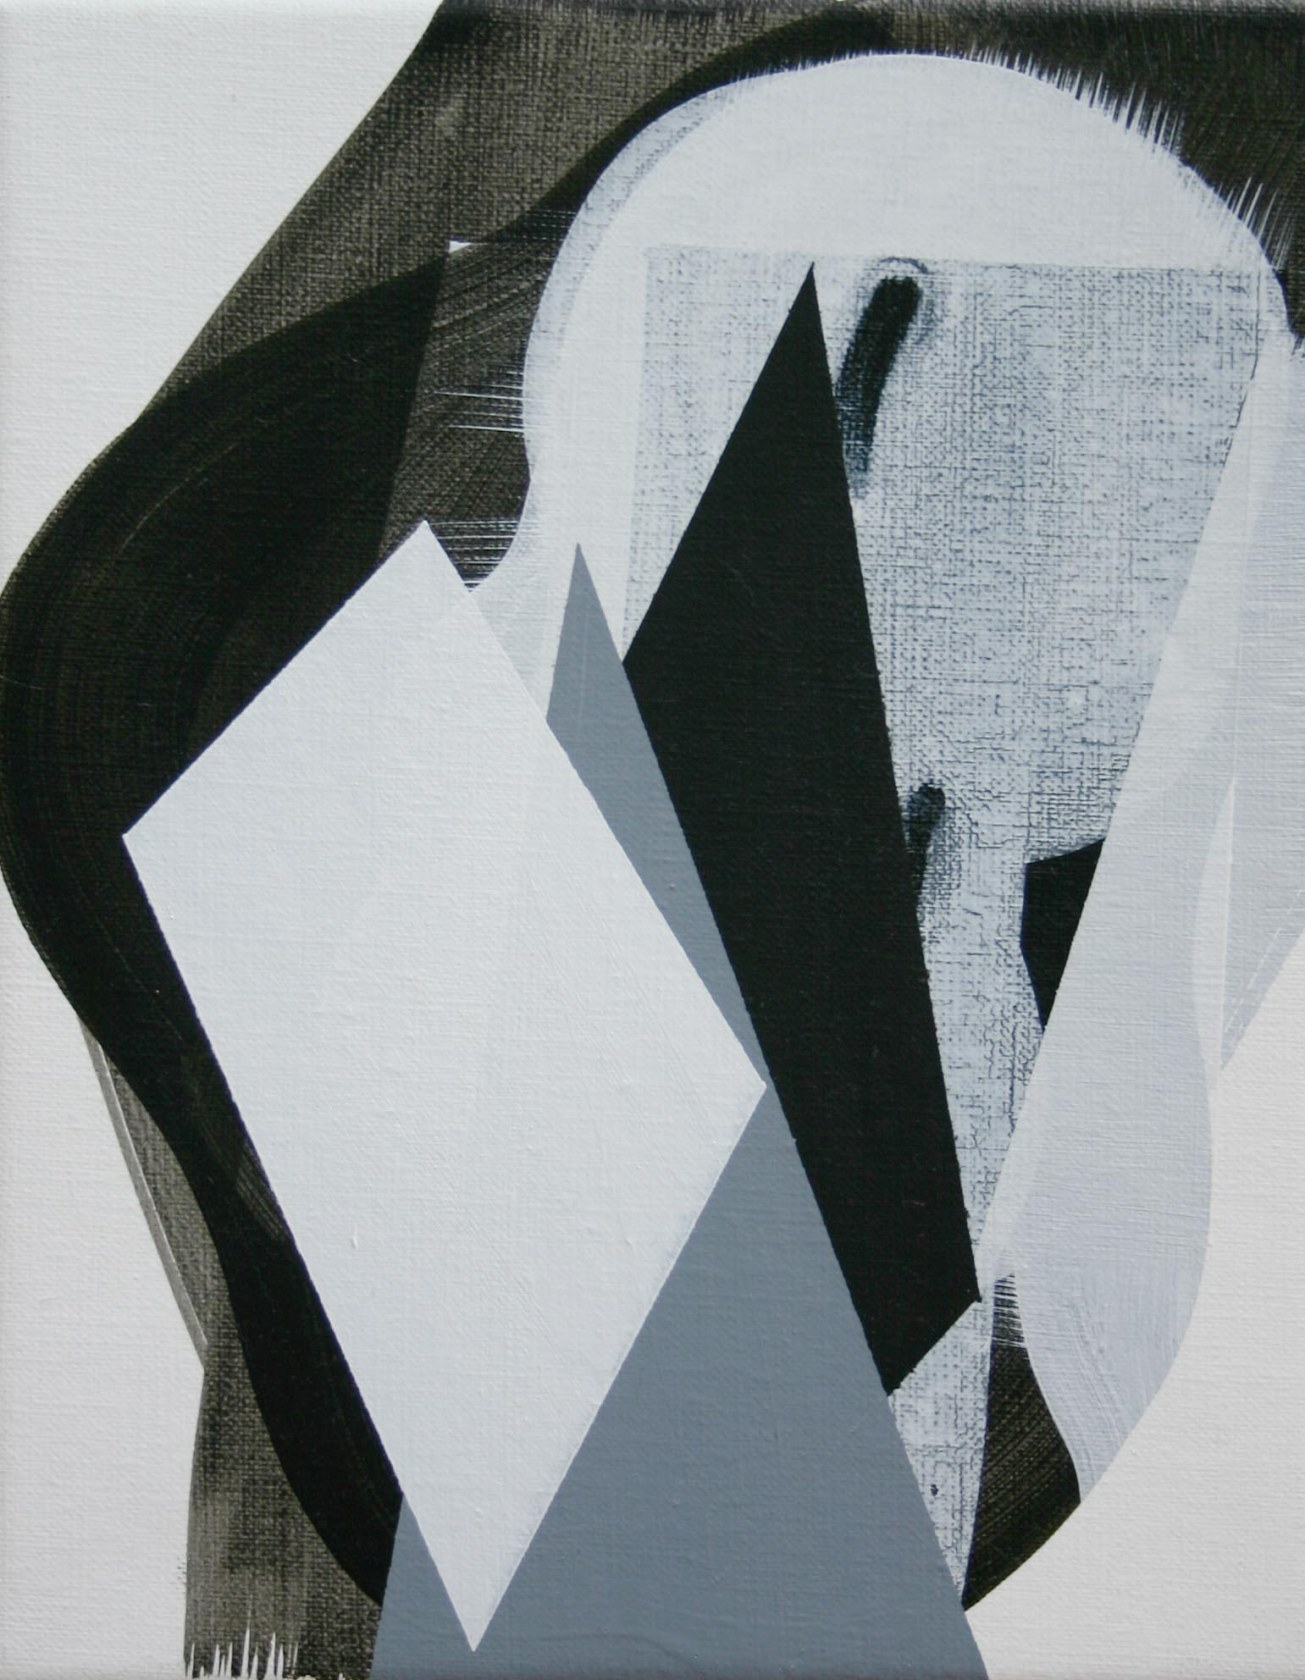 emma-smith-diamond-back-acrylic-on-canvas-280x-225mm-2014jpg